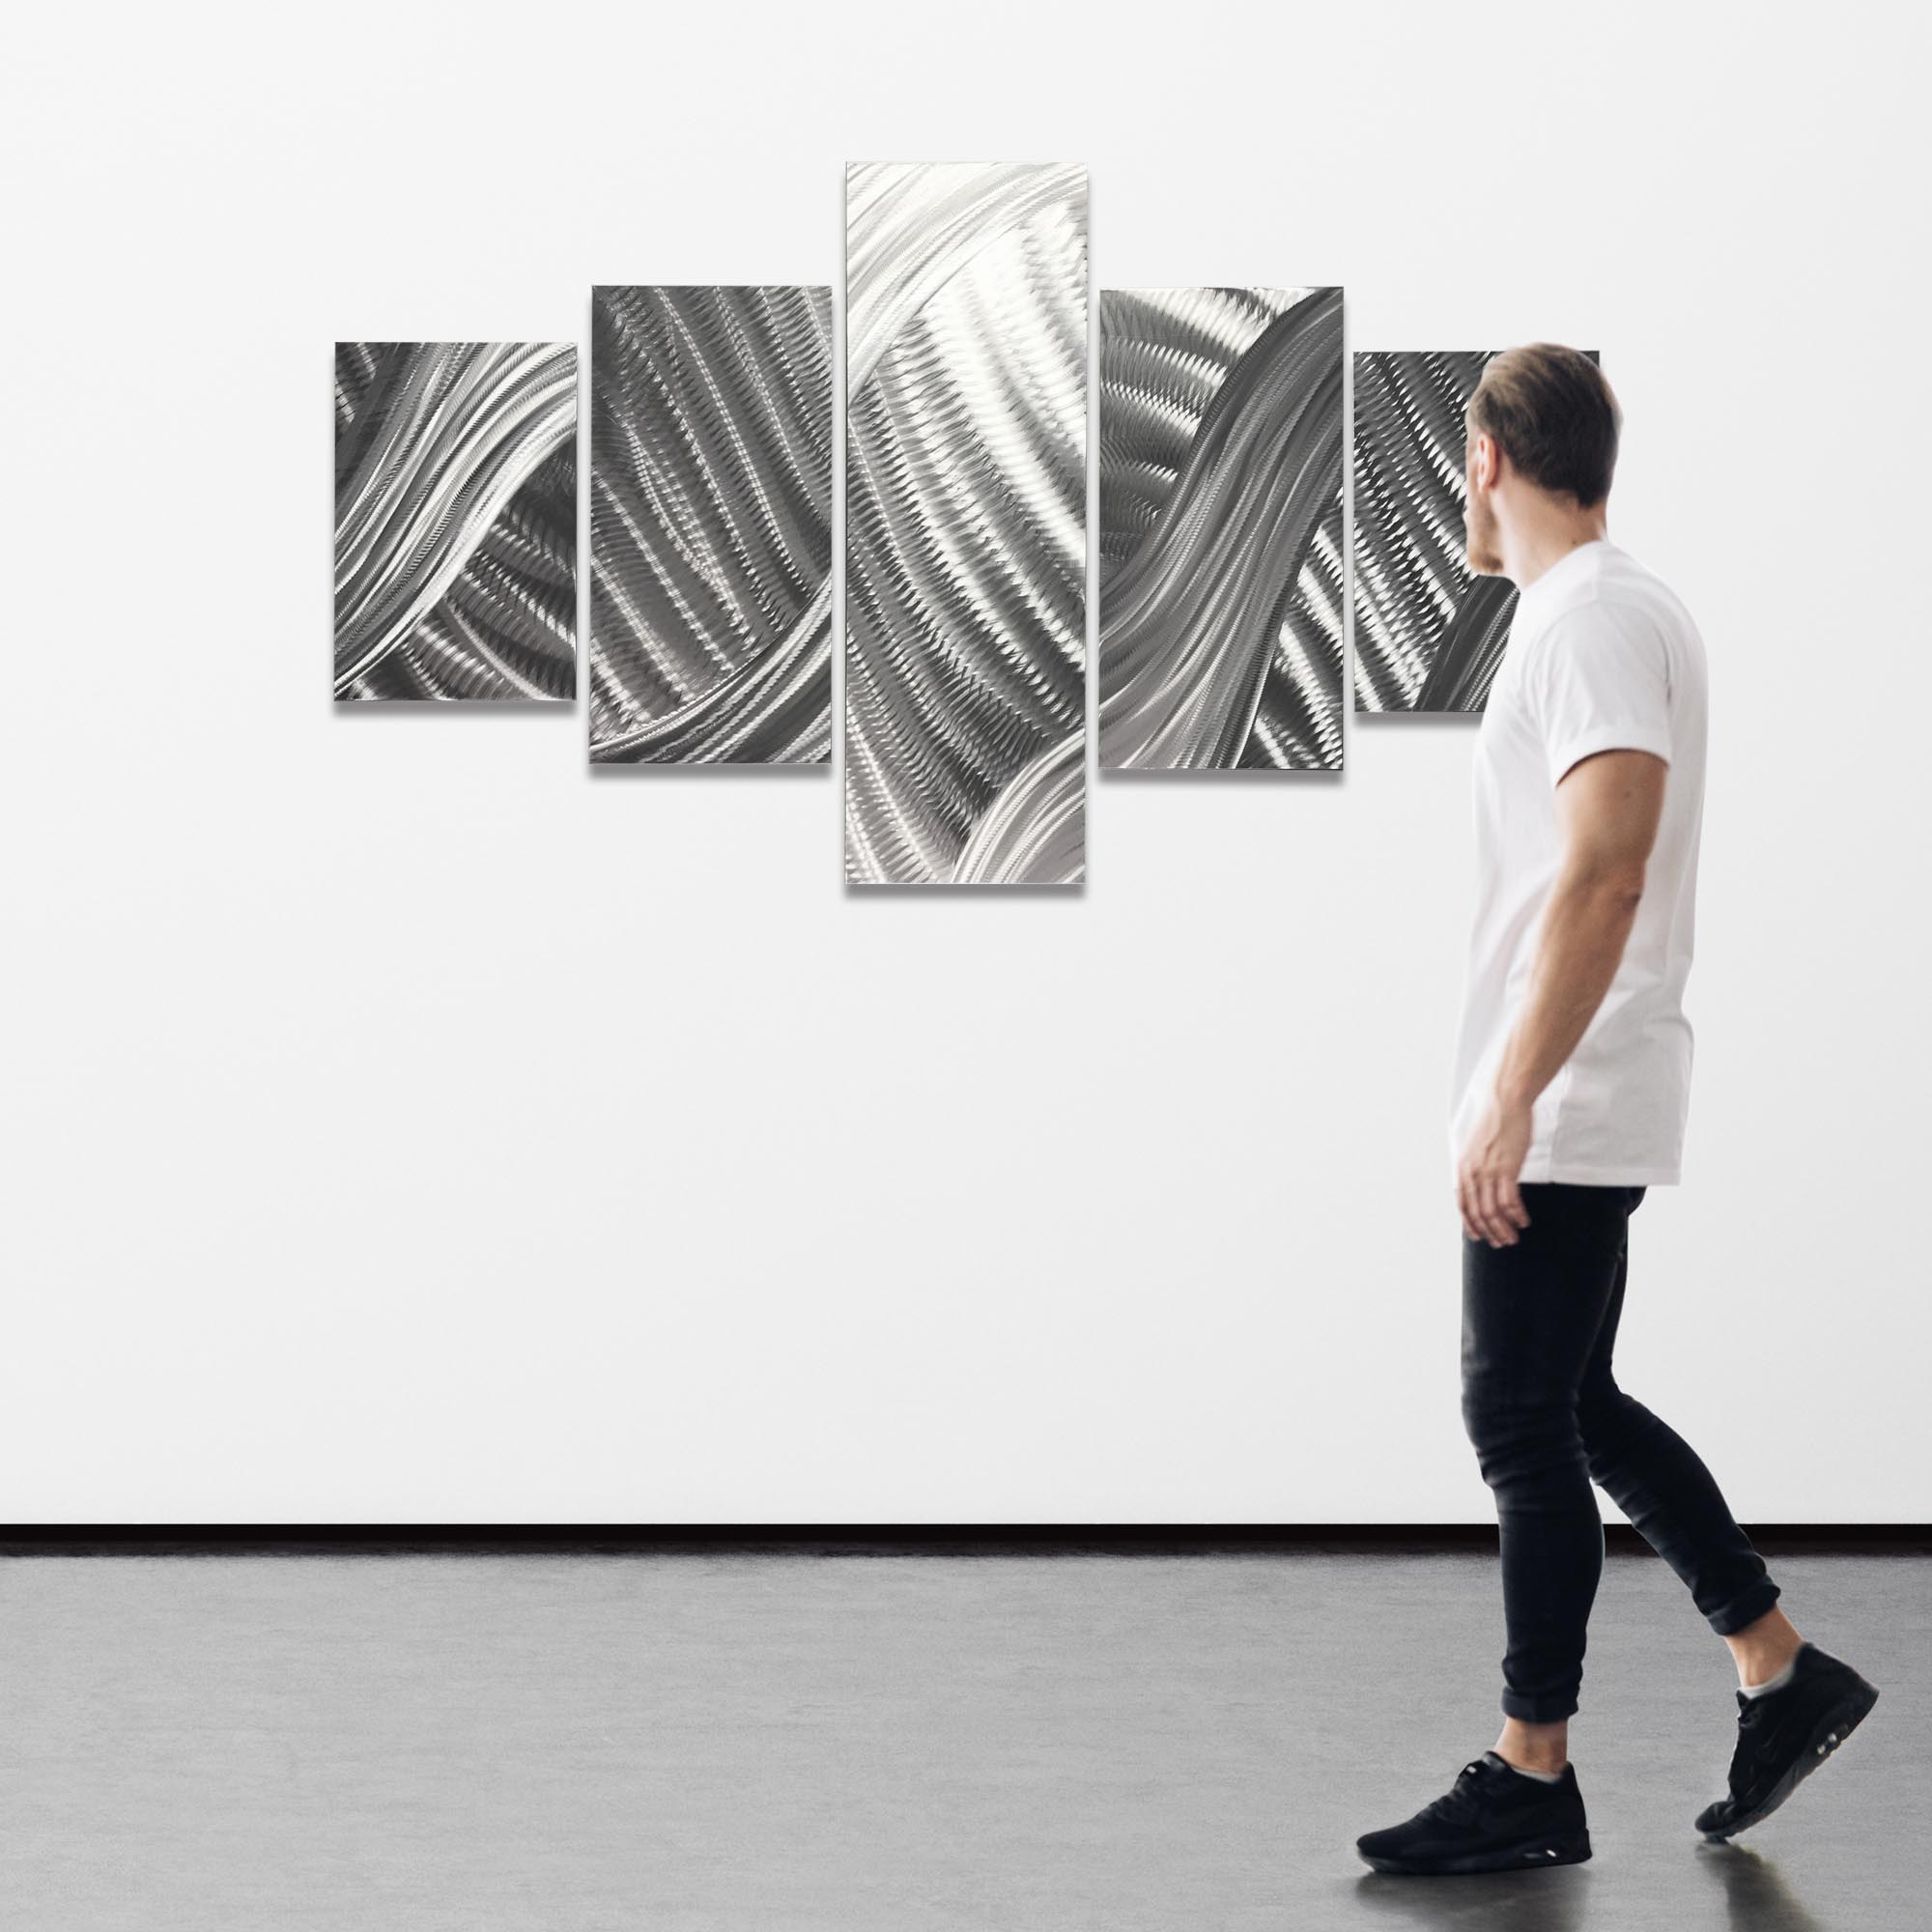 Columnar Brushstrokes 64x36in. Natural Aluminum Abstract Decor - Image 3